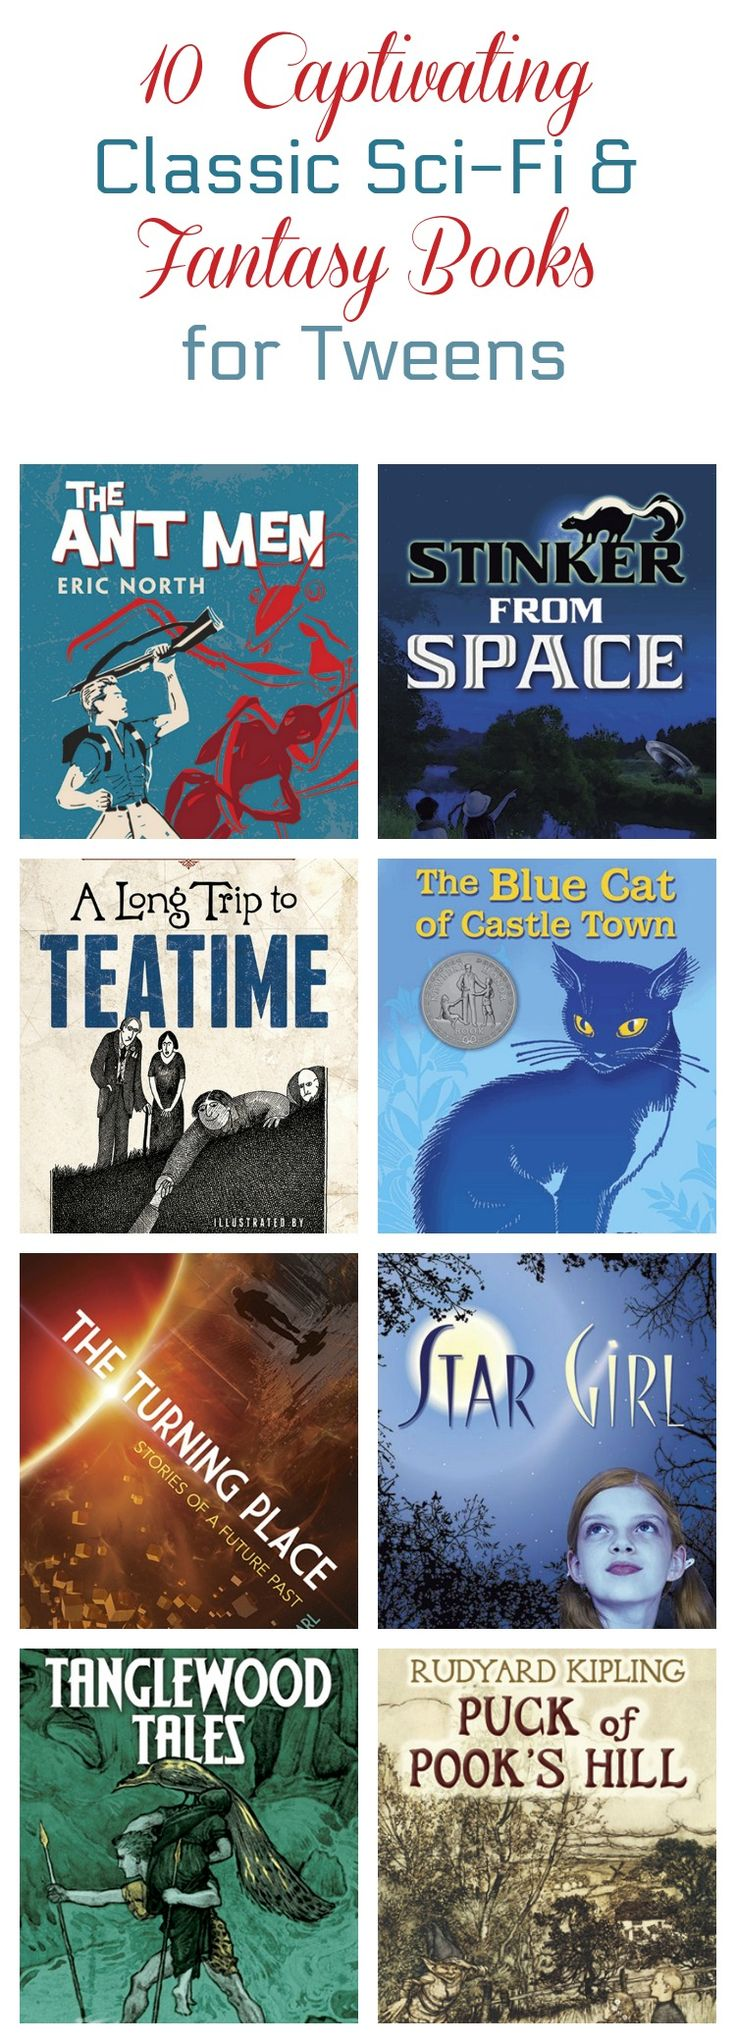 10 Scifi & Fantasy Books To Introduce Tweens To The Classics